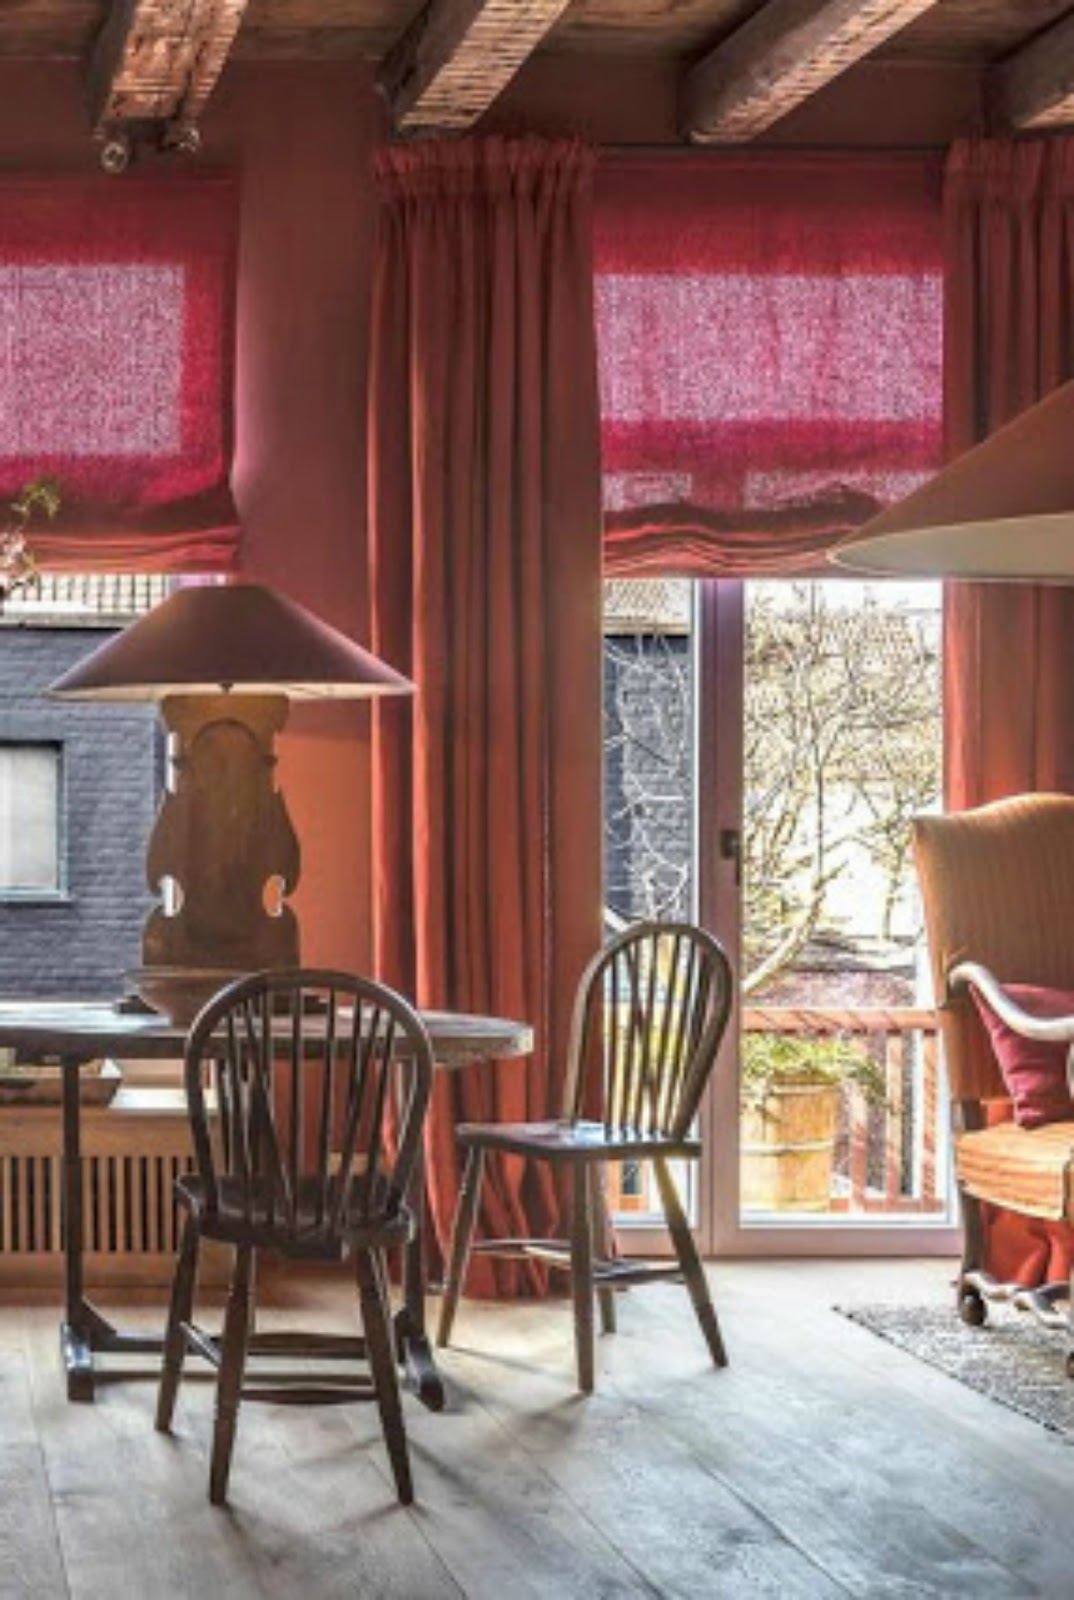 Belgian interior design style in a colorful dining room - found on Hello Lovely Studio